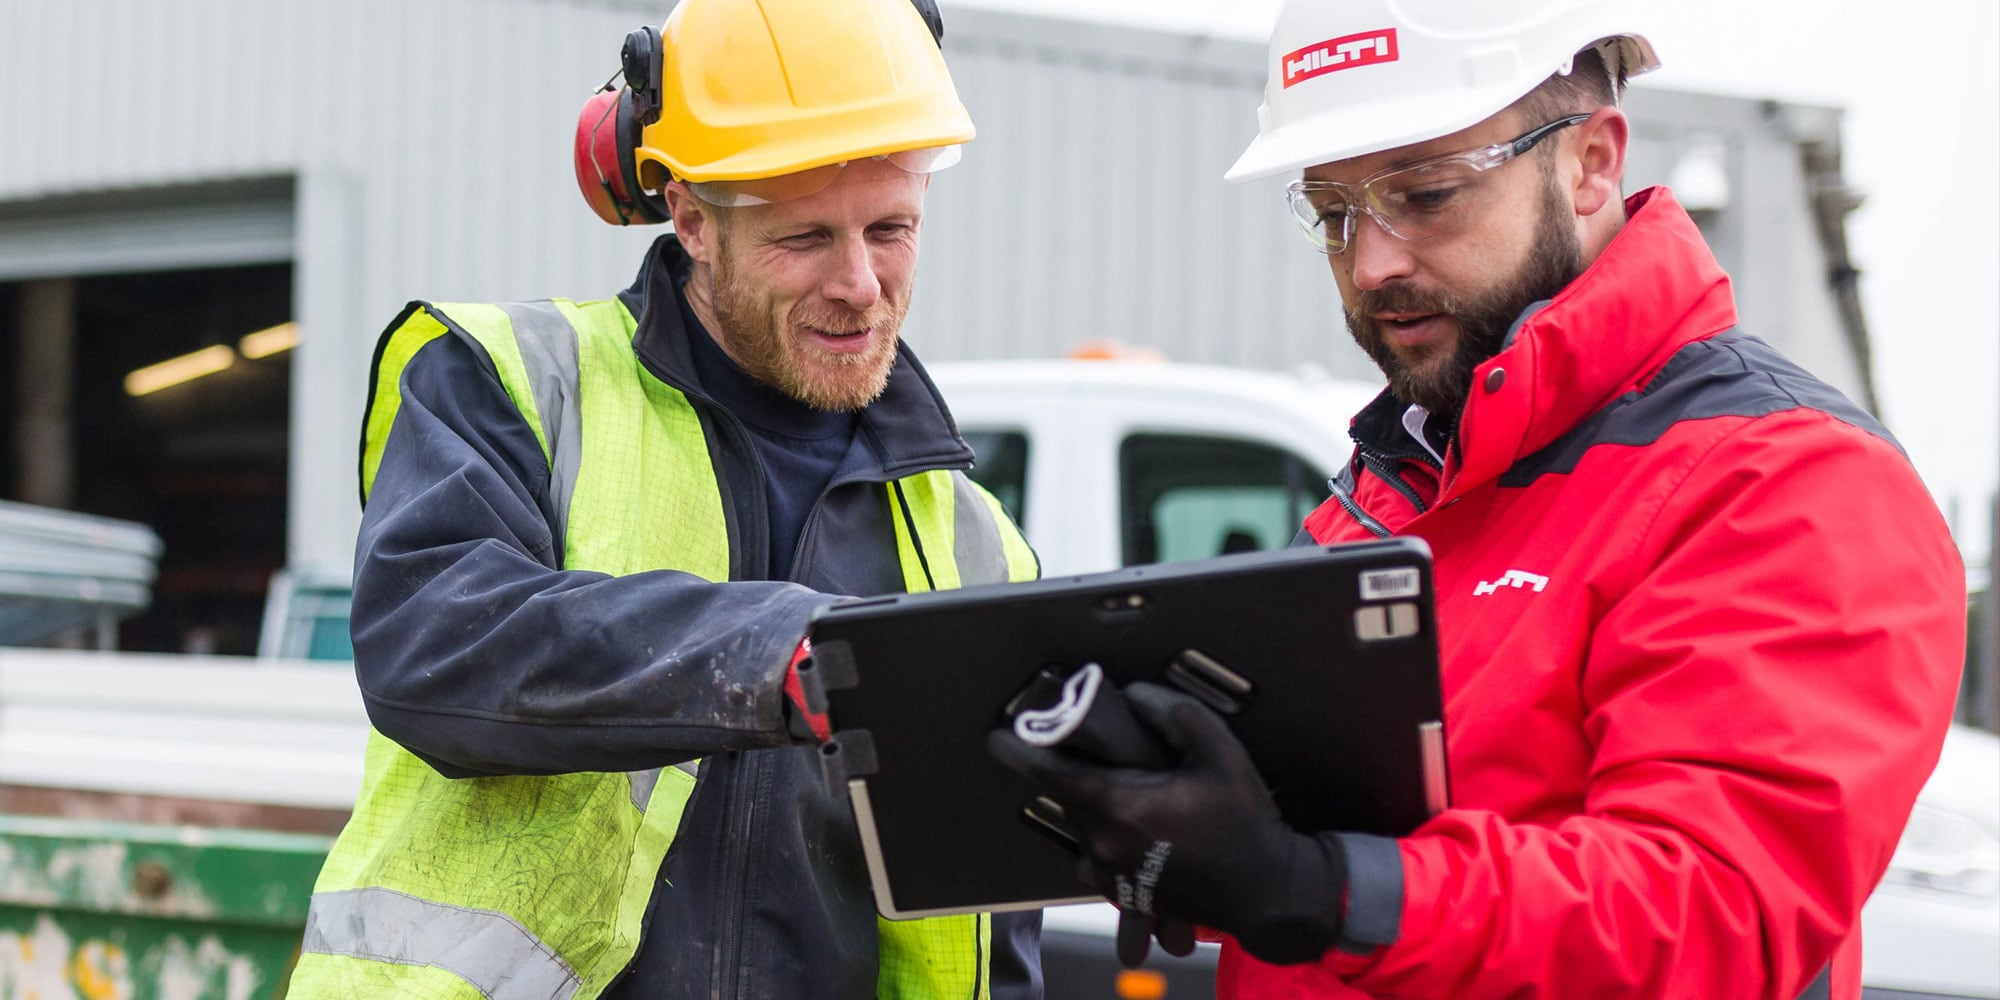 What's new from Hilti